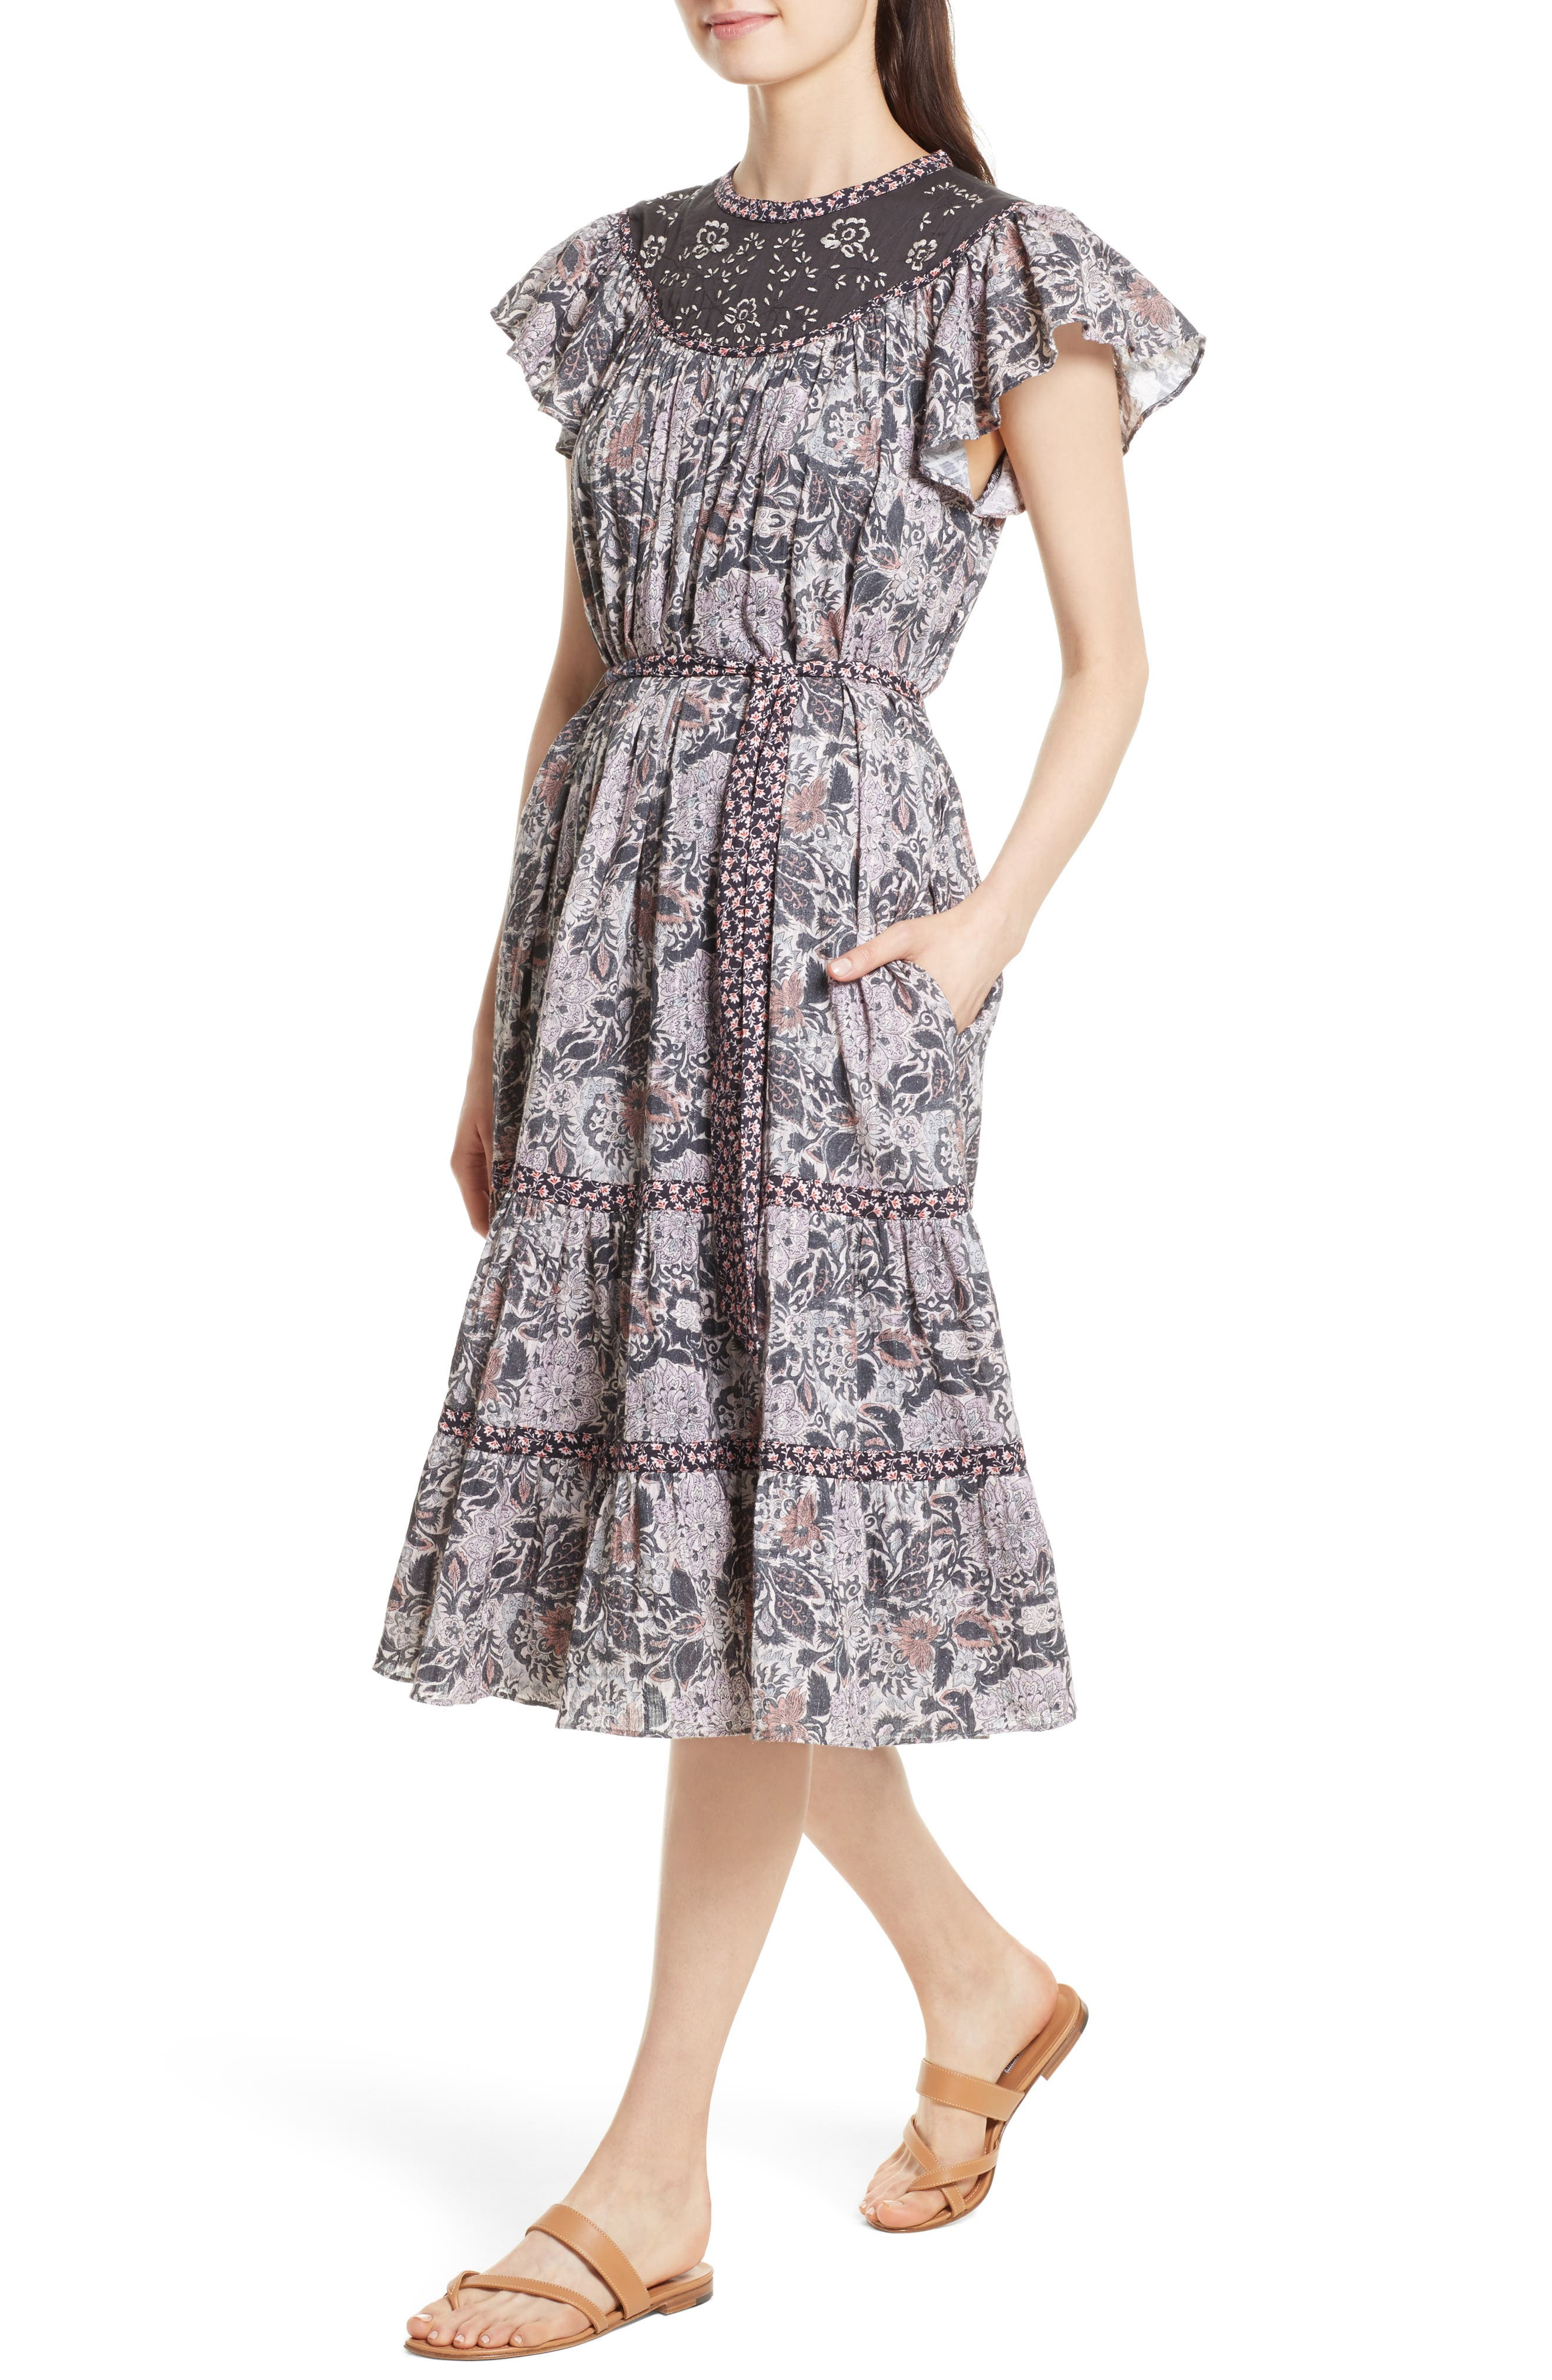 Indochine Embroidered Floral Dress,                             Alternate thumbnail 4, color,                             Washed Black Combo